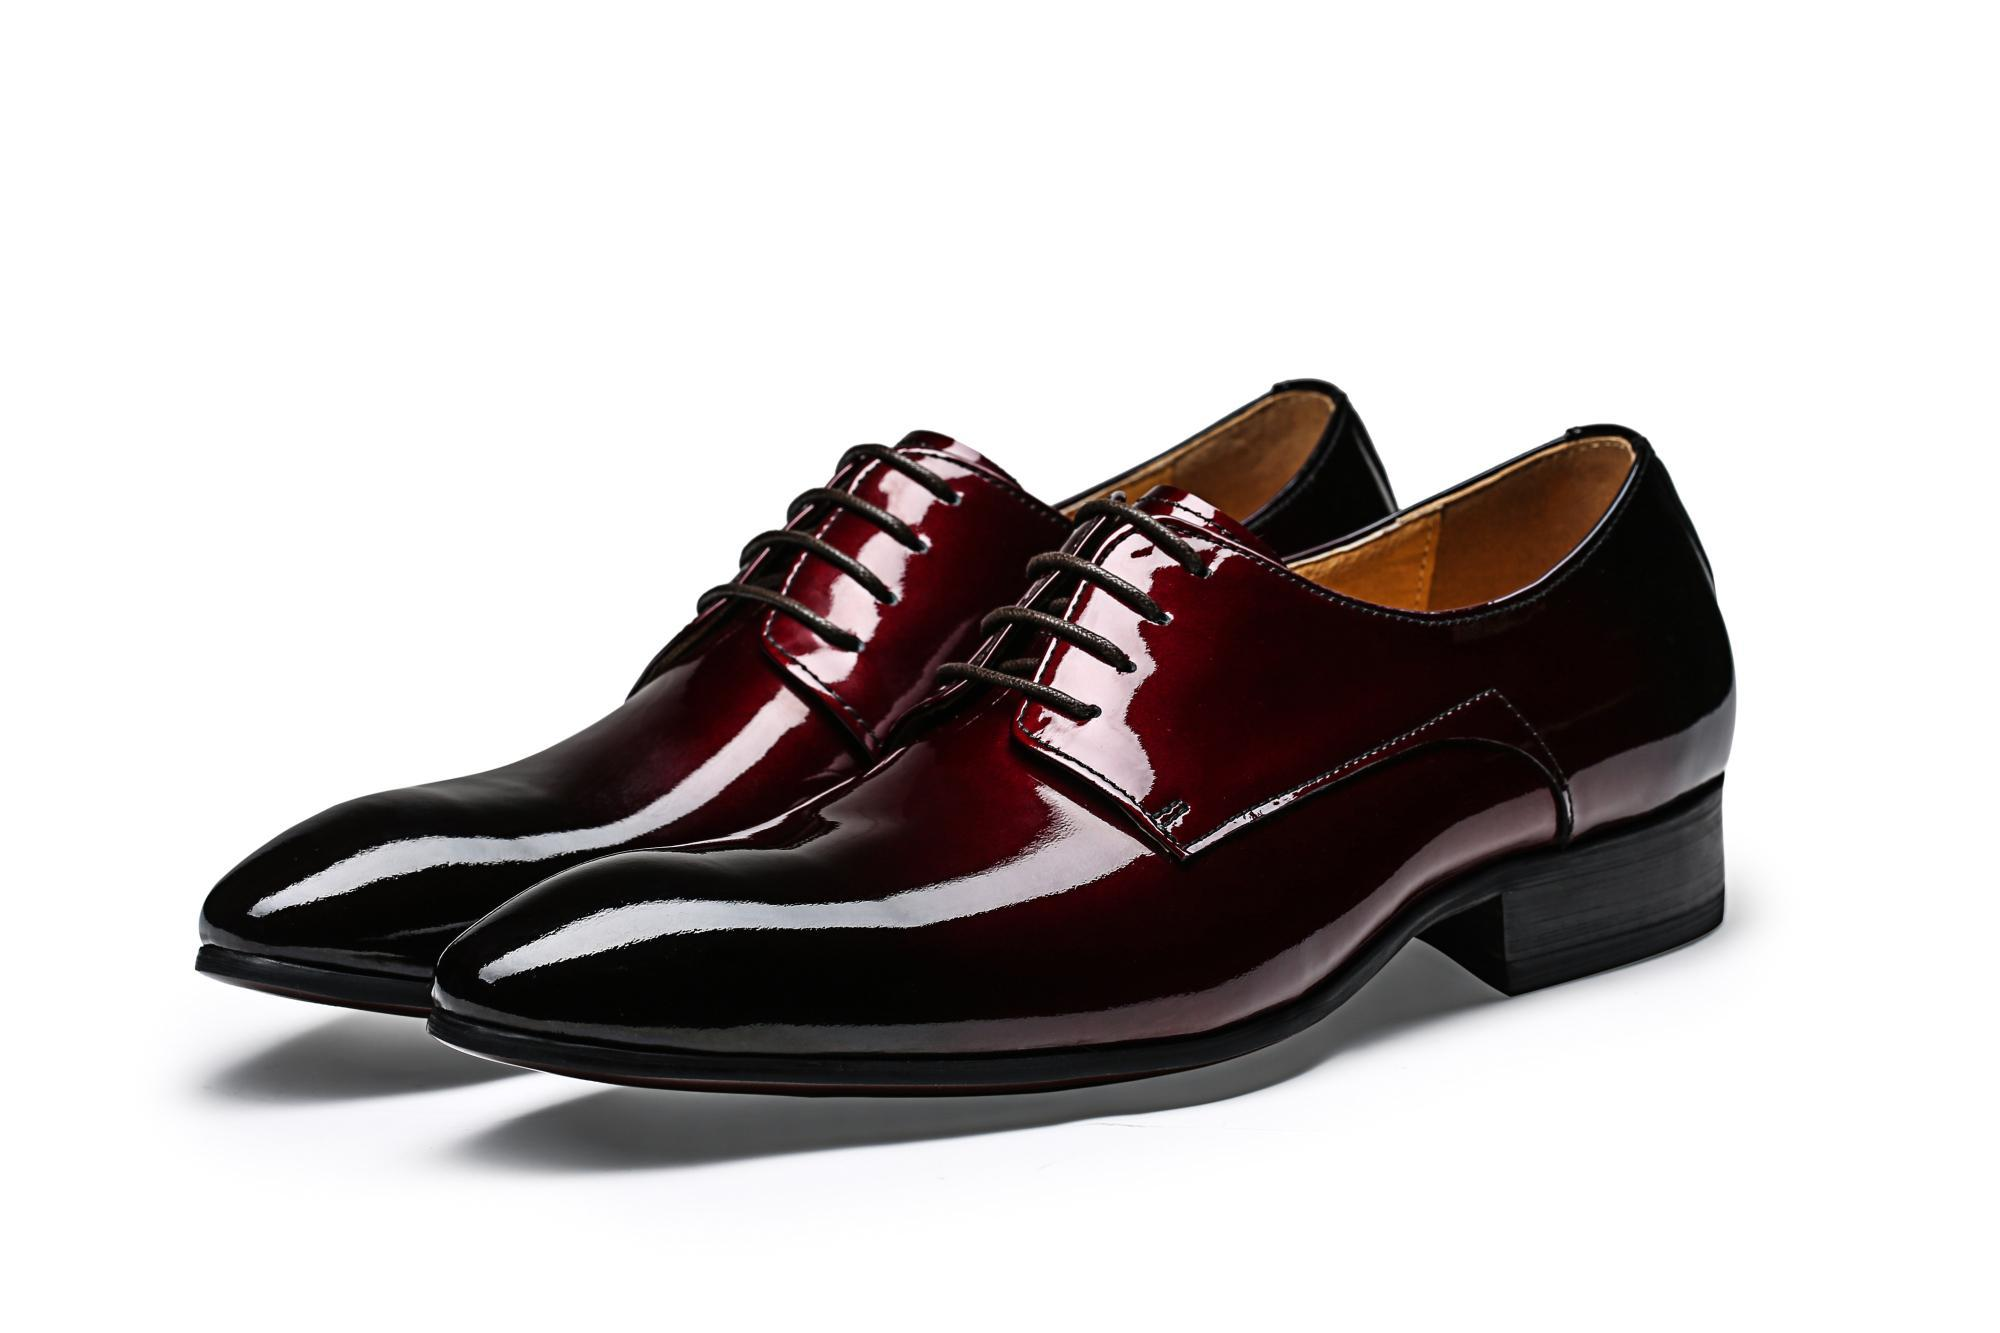 Cool Pointed Toe Wine Red Black Derby Shoes Mens Dress Shoes